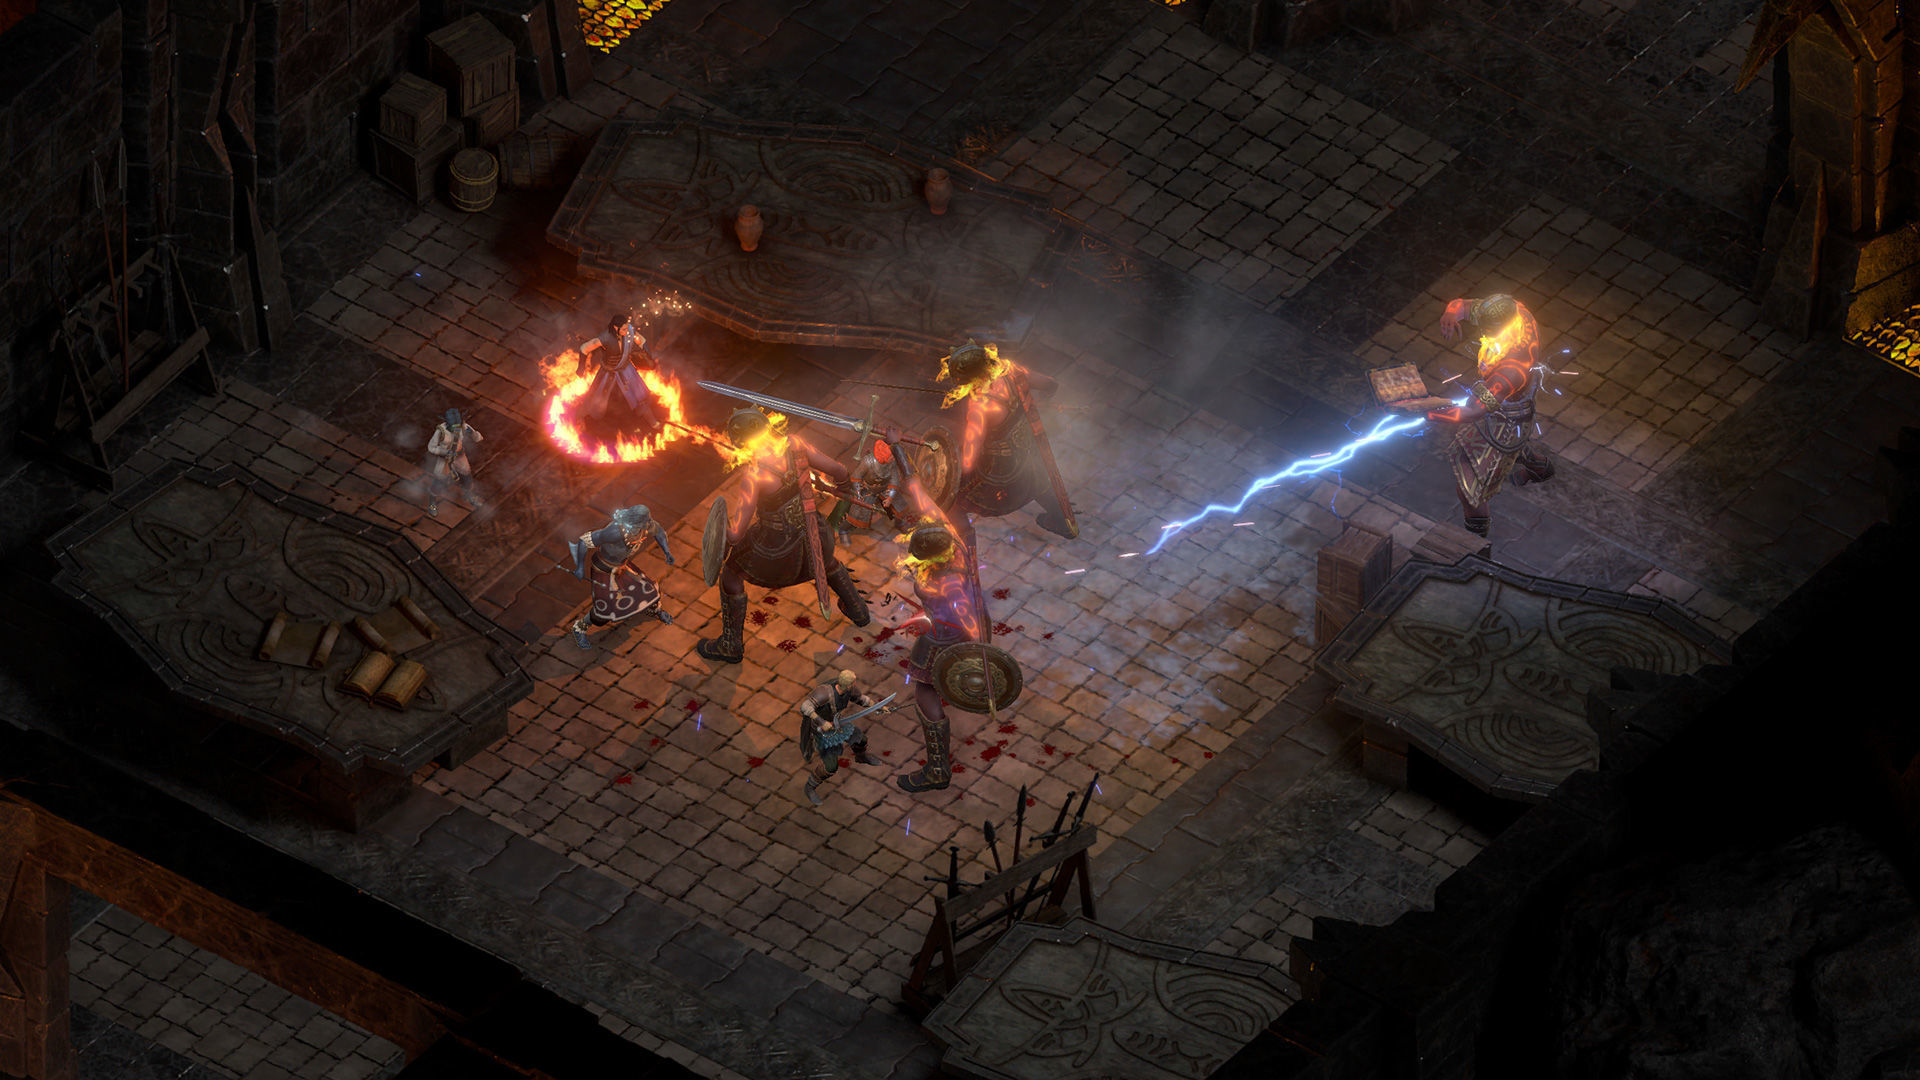 Pillars of Eternity 2: Deadfire - The Ultimate Collectors Edition